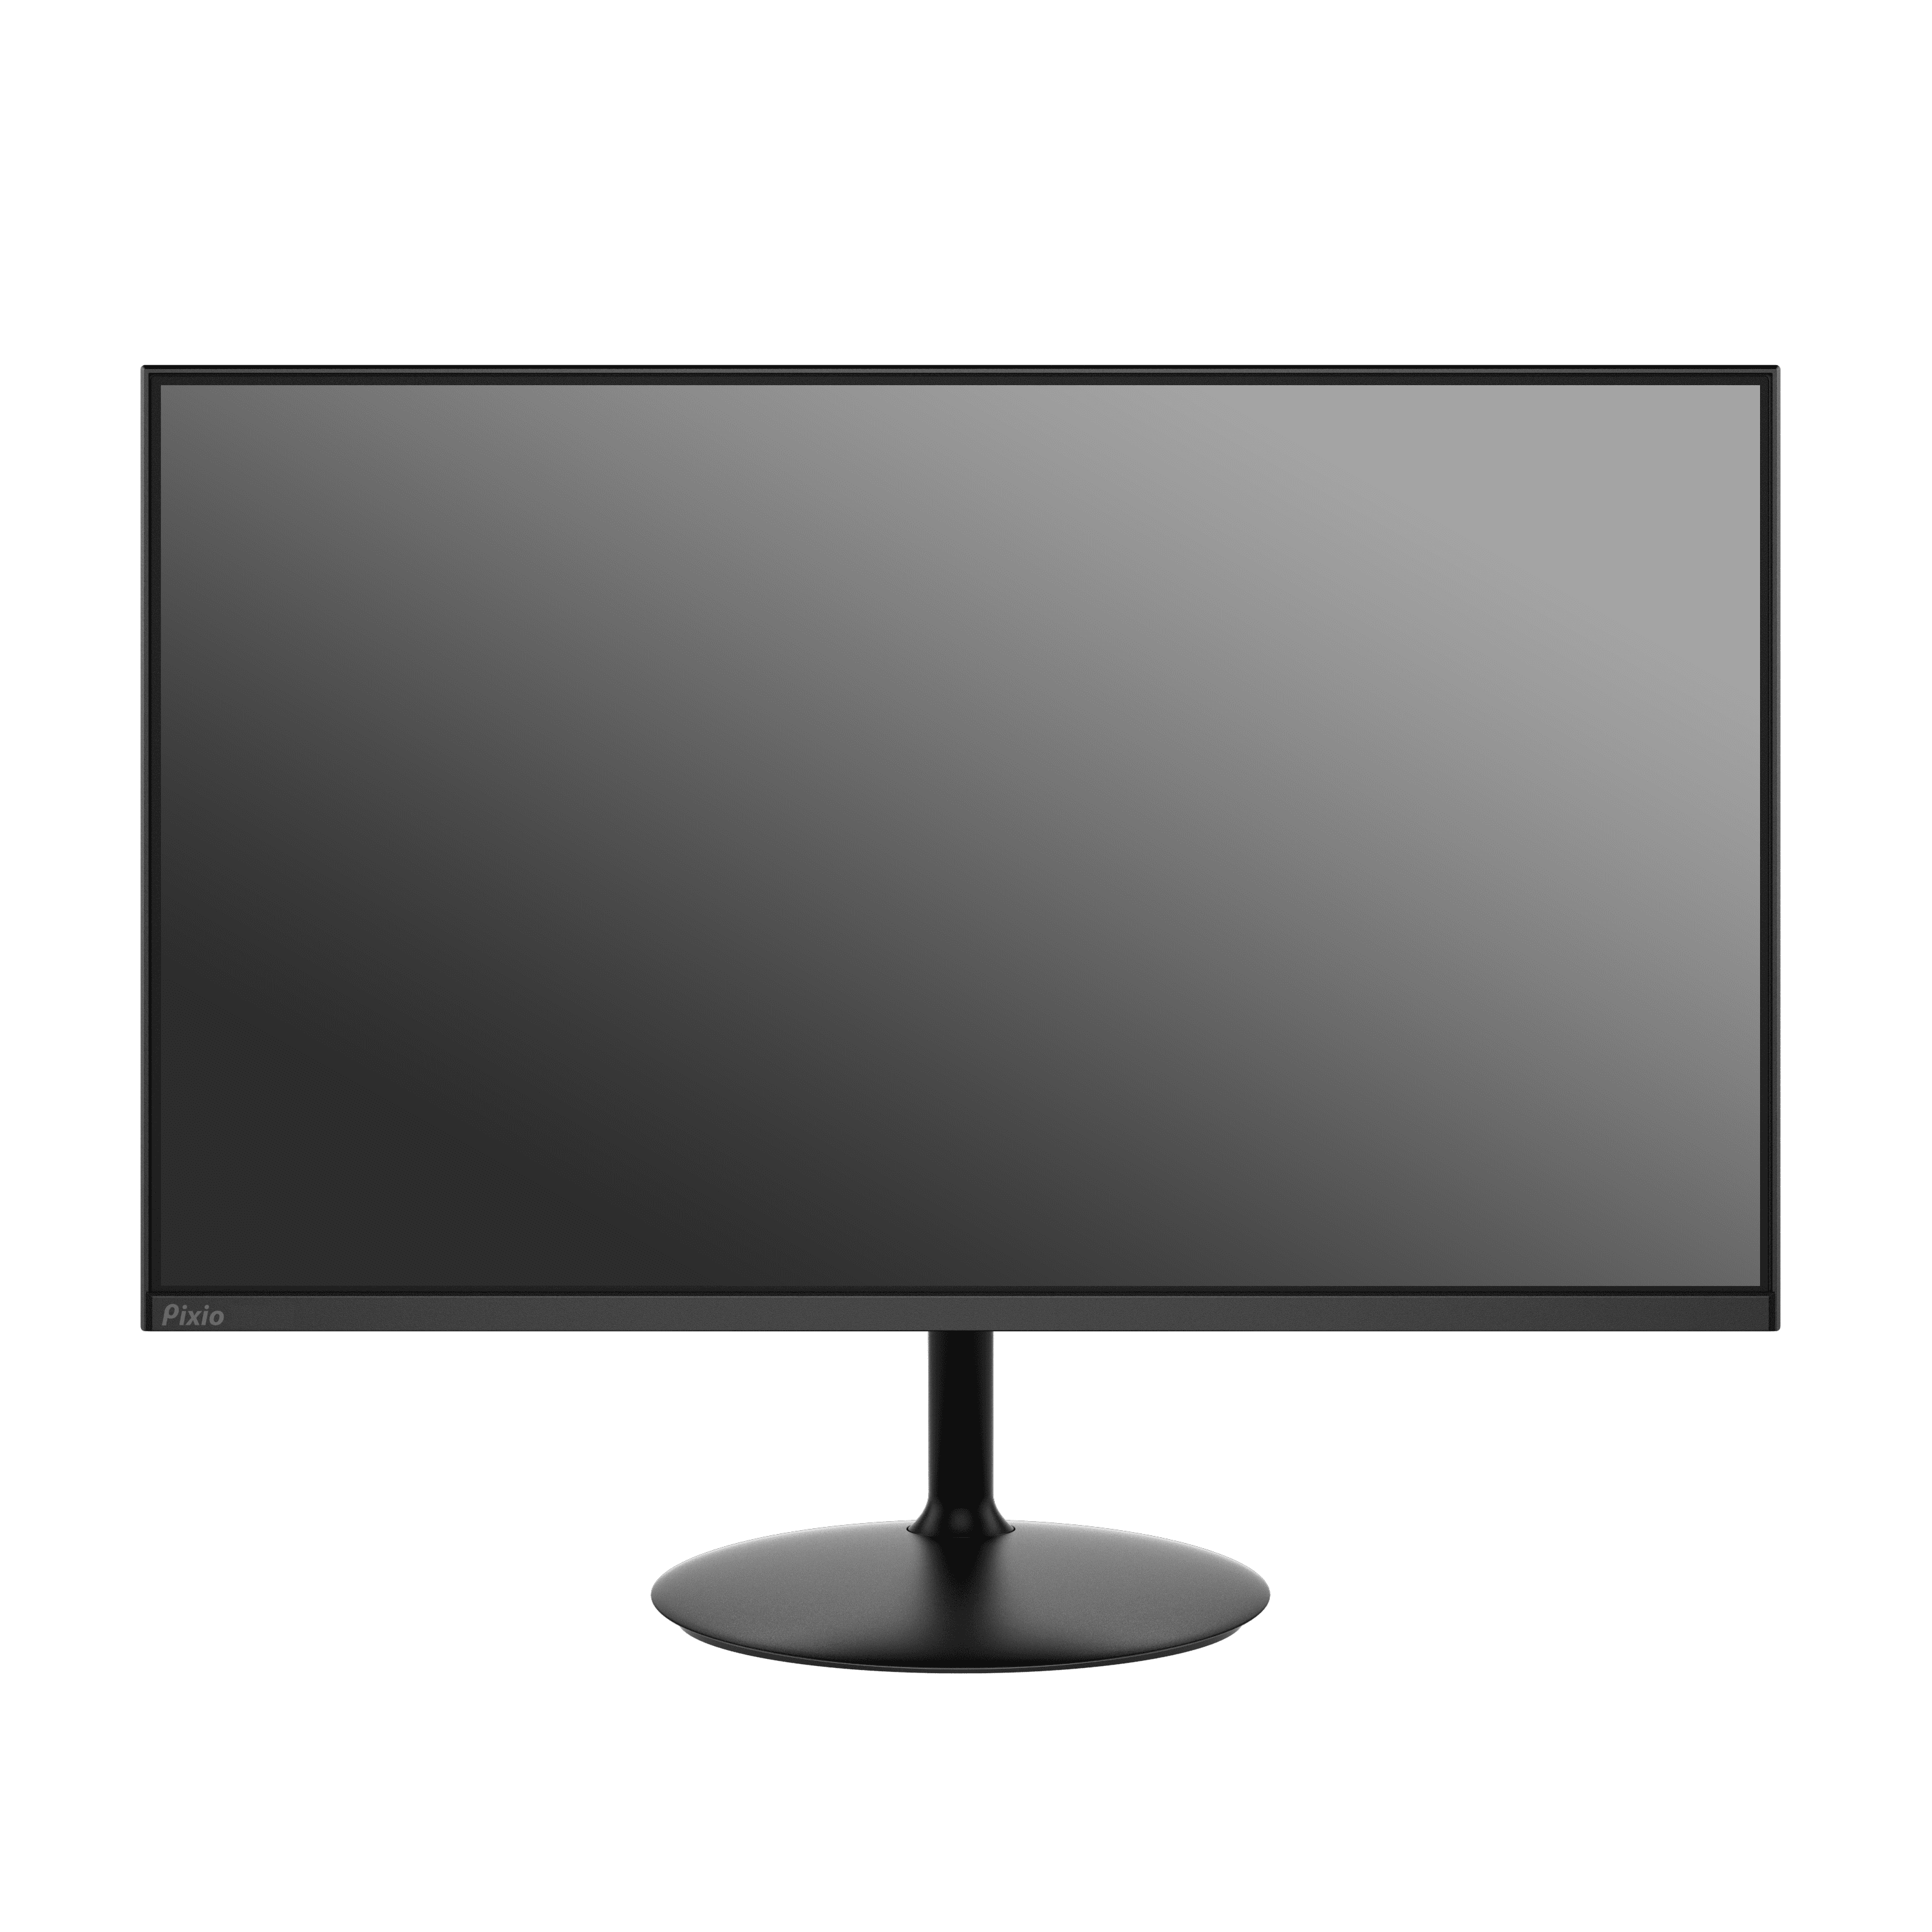 Pixio-24inch-monitor-PX242-Front